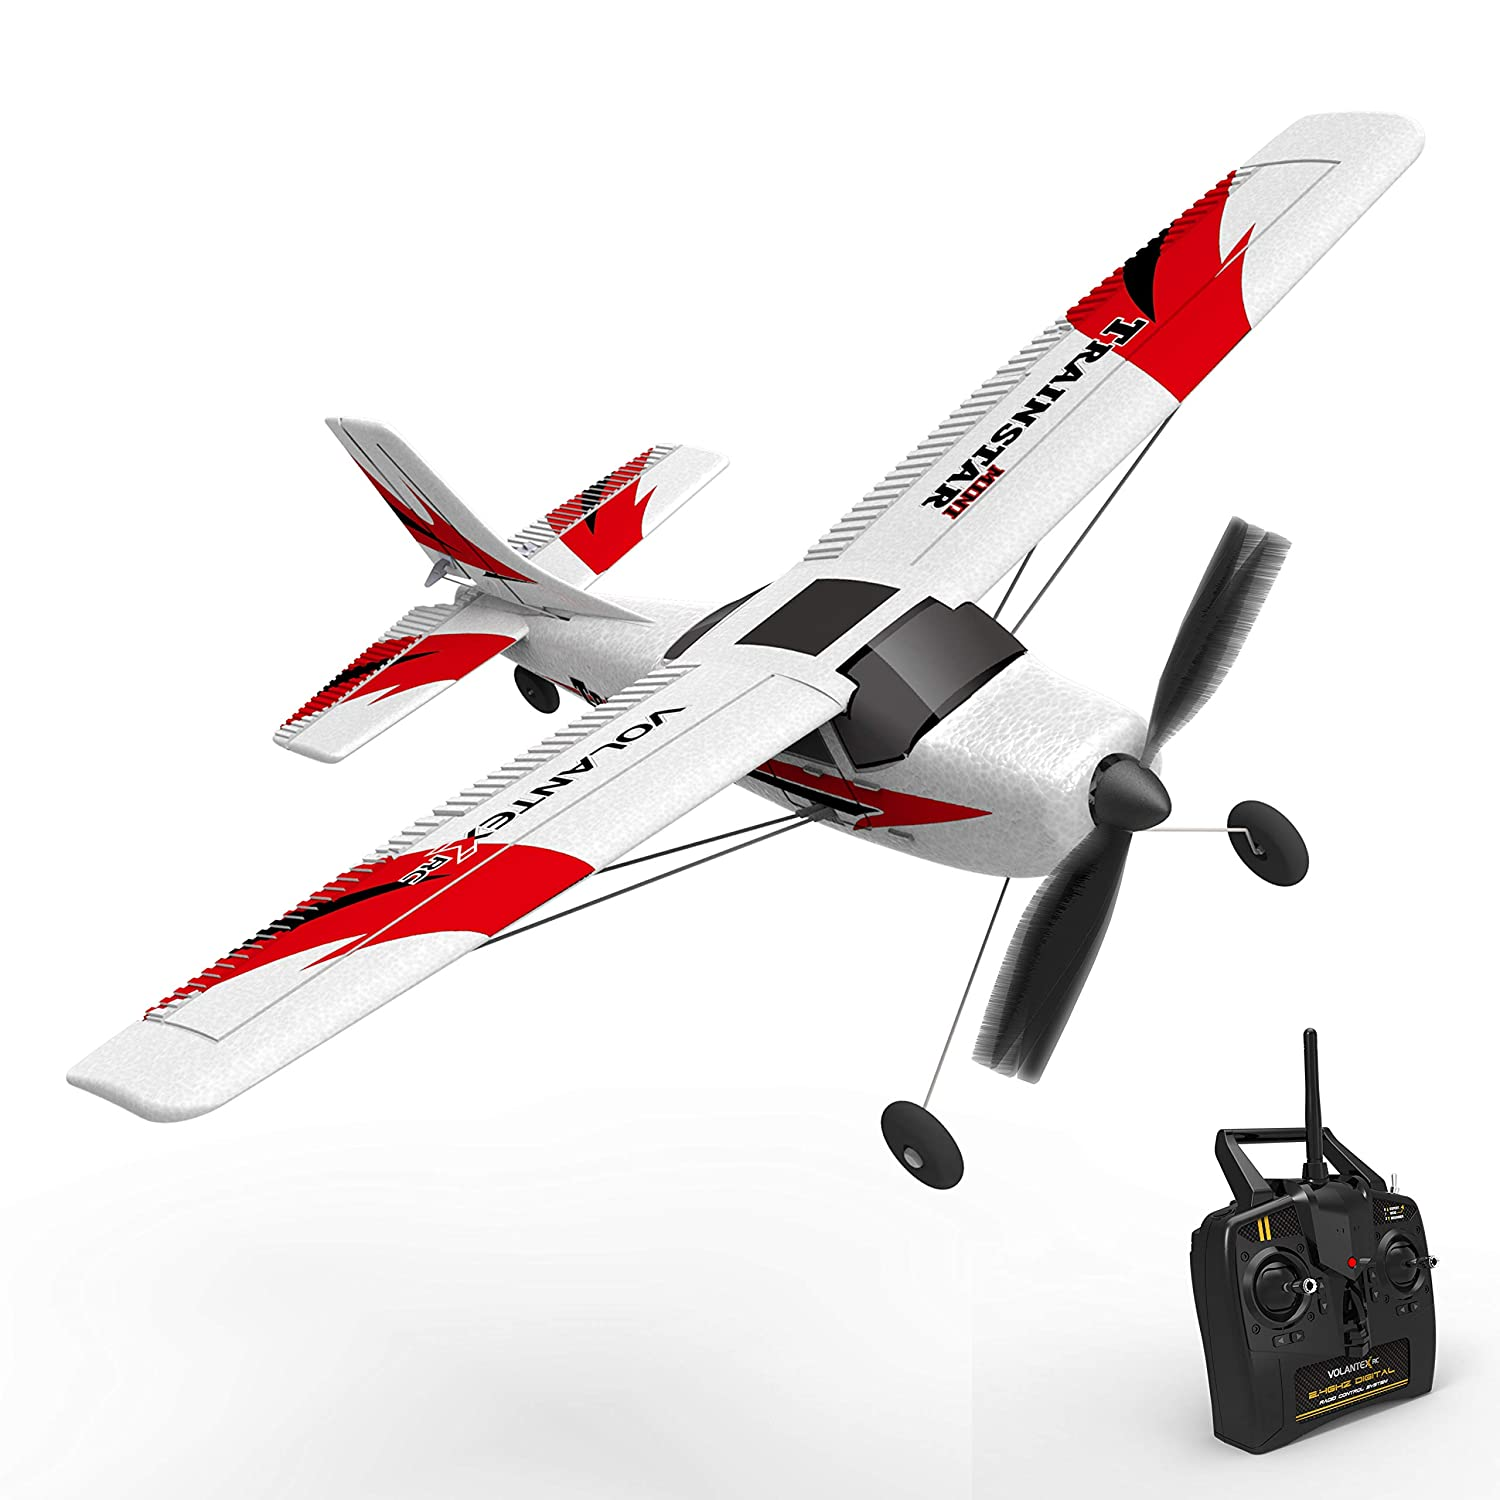 VOLANTEXRC RC Airplane Remote Control Airplane TrainStar Mini 2 4GHz RC  Plane Ready to Fly with 2 4GHz Control, 6-Axis Gyro Easy to Fly for  Beginners